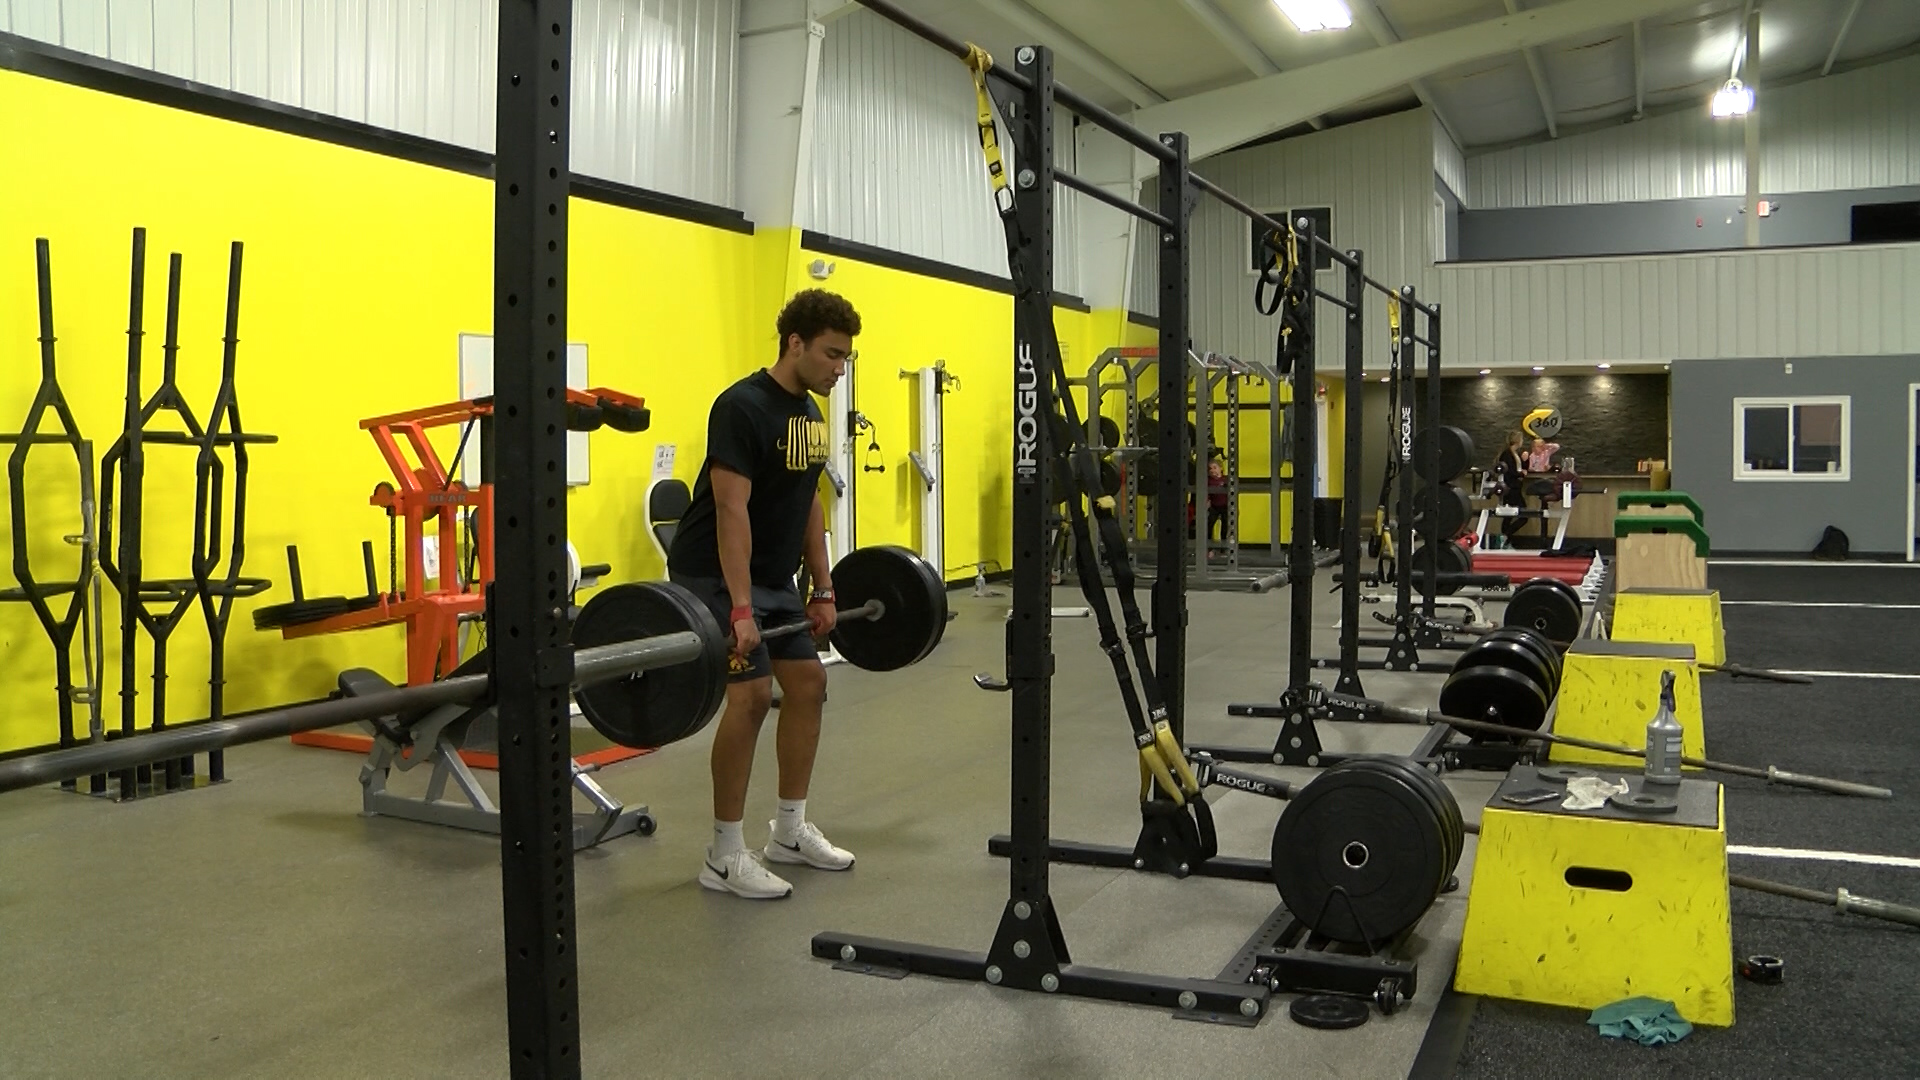 East Peoria Gyms Begin To Reopen Trainers Athletes Ready To Get Back To Work Ciproud Com